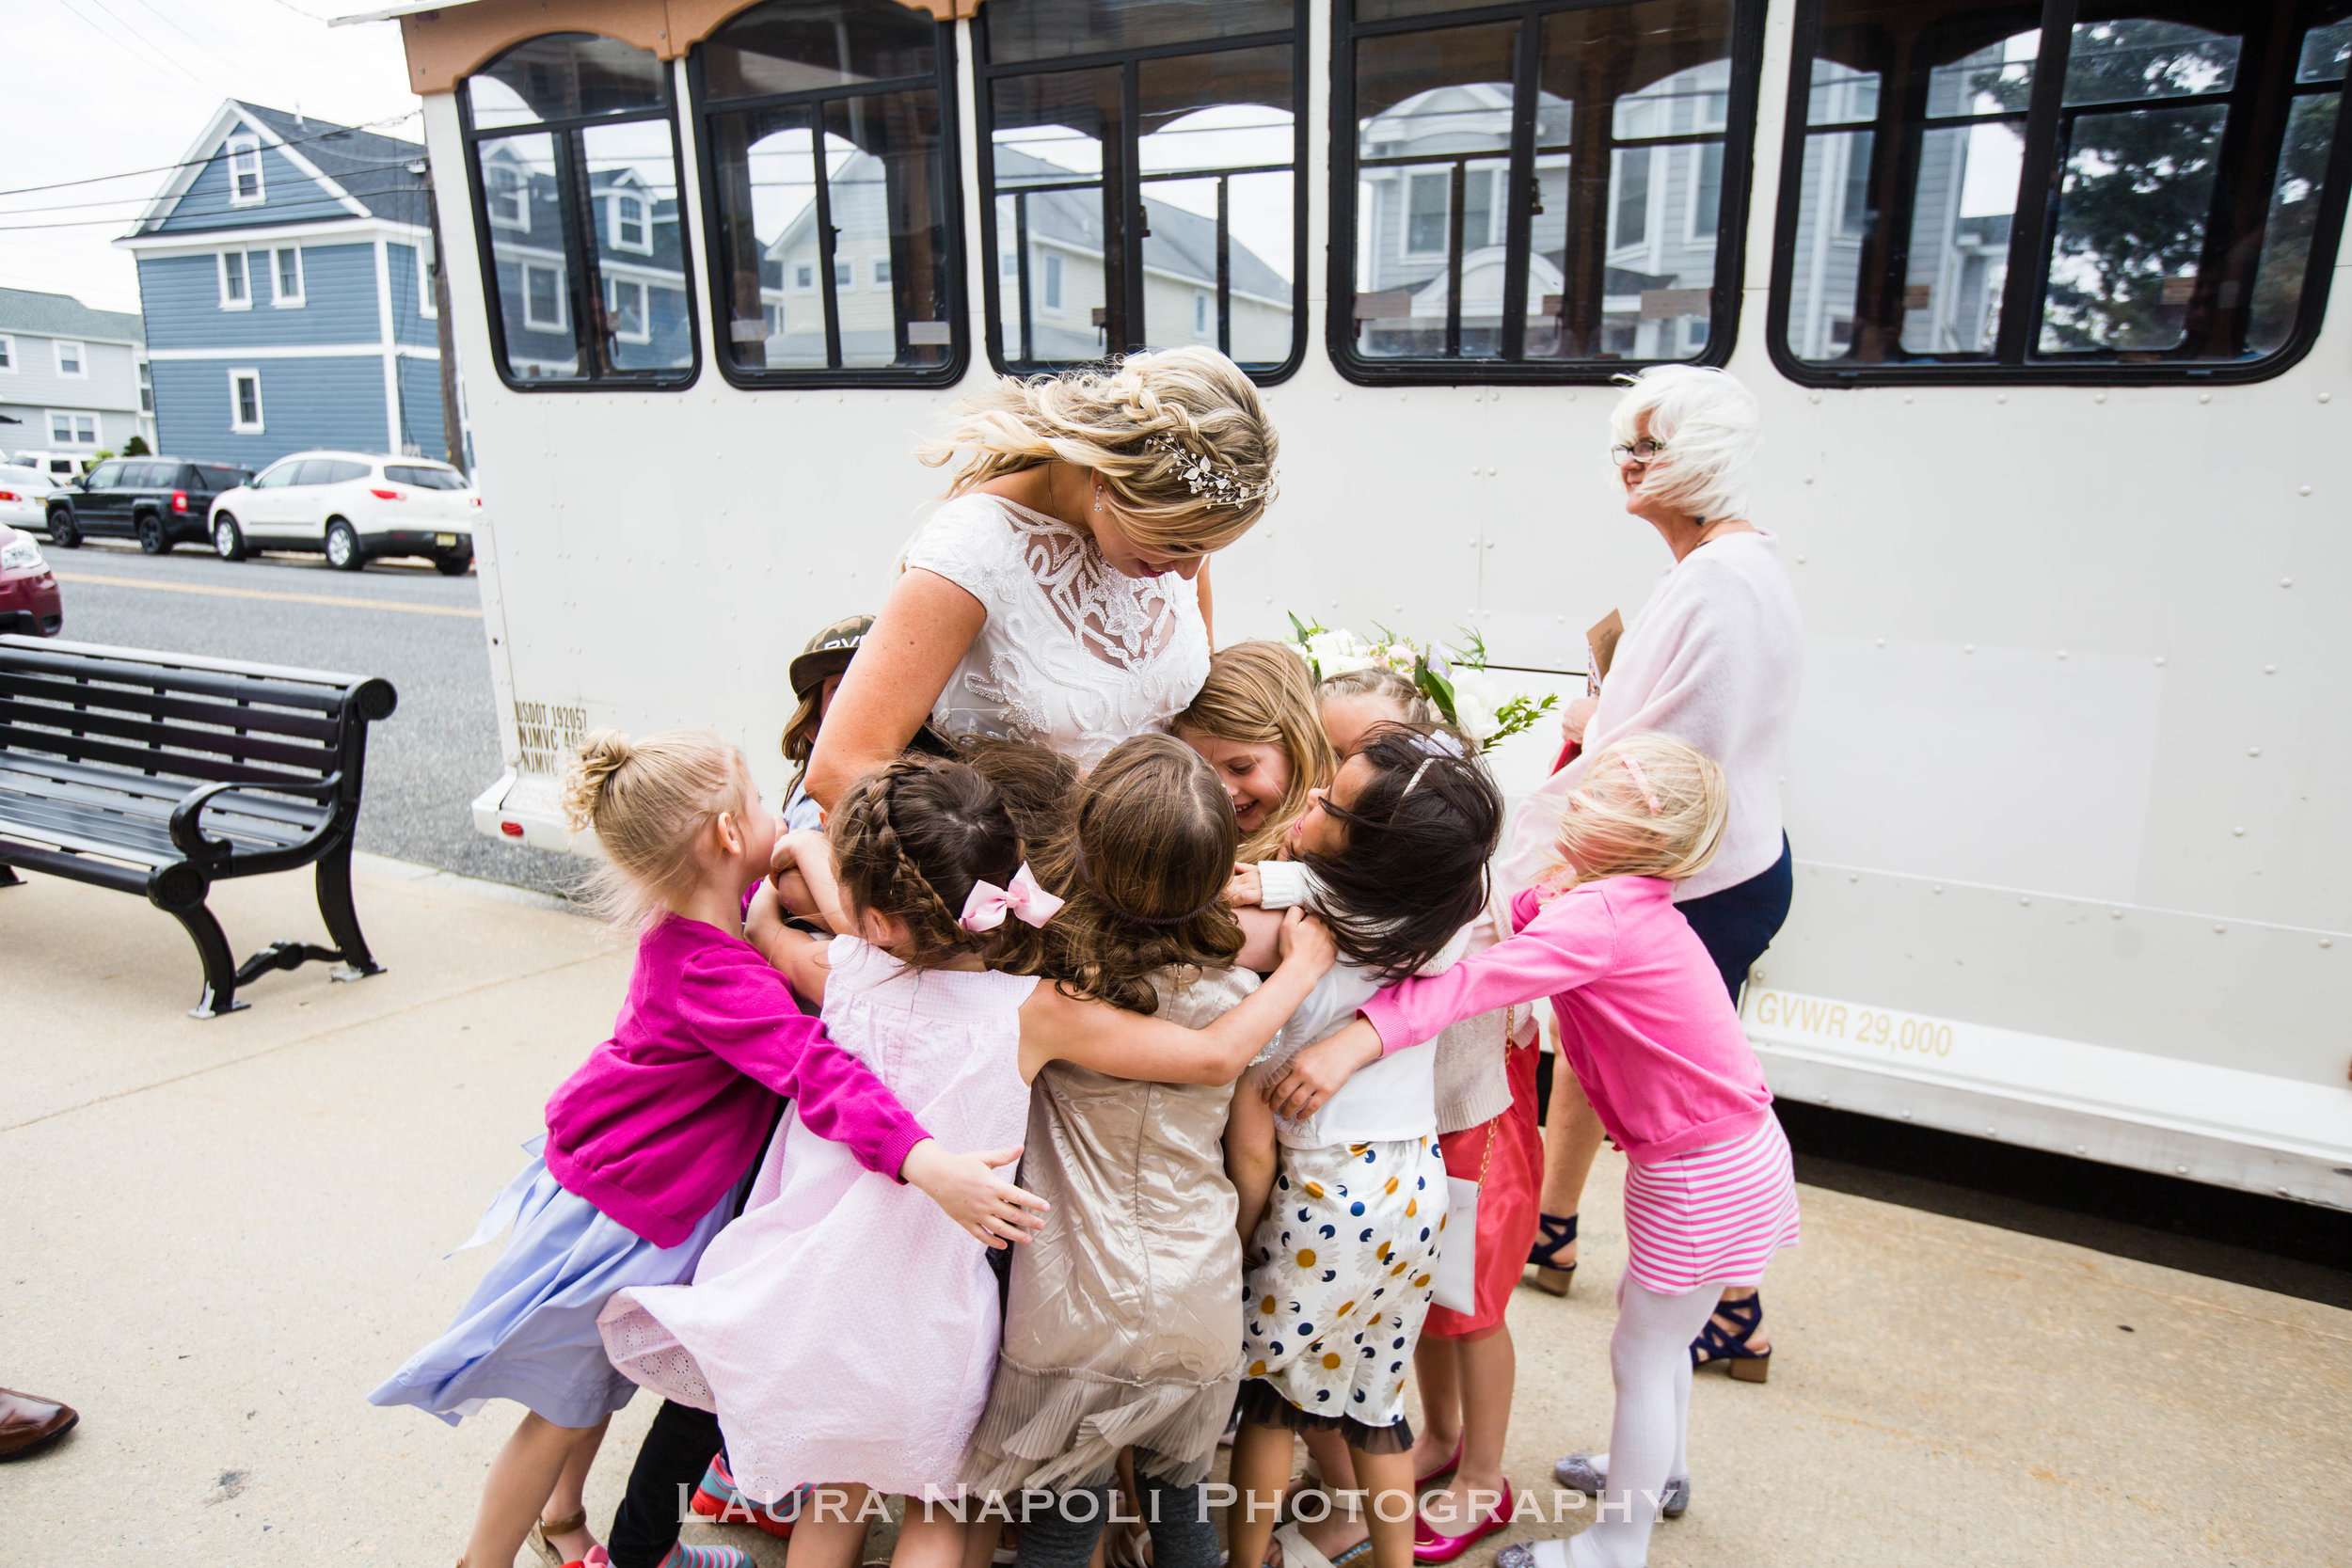 abbieholmesestateweddingcapemaynjweddingphotographer-13.jpg